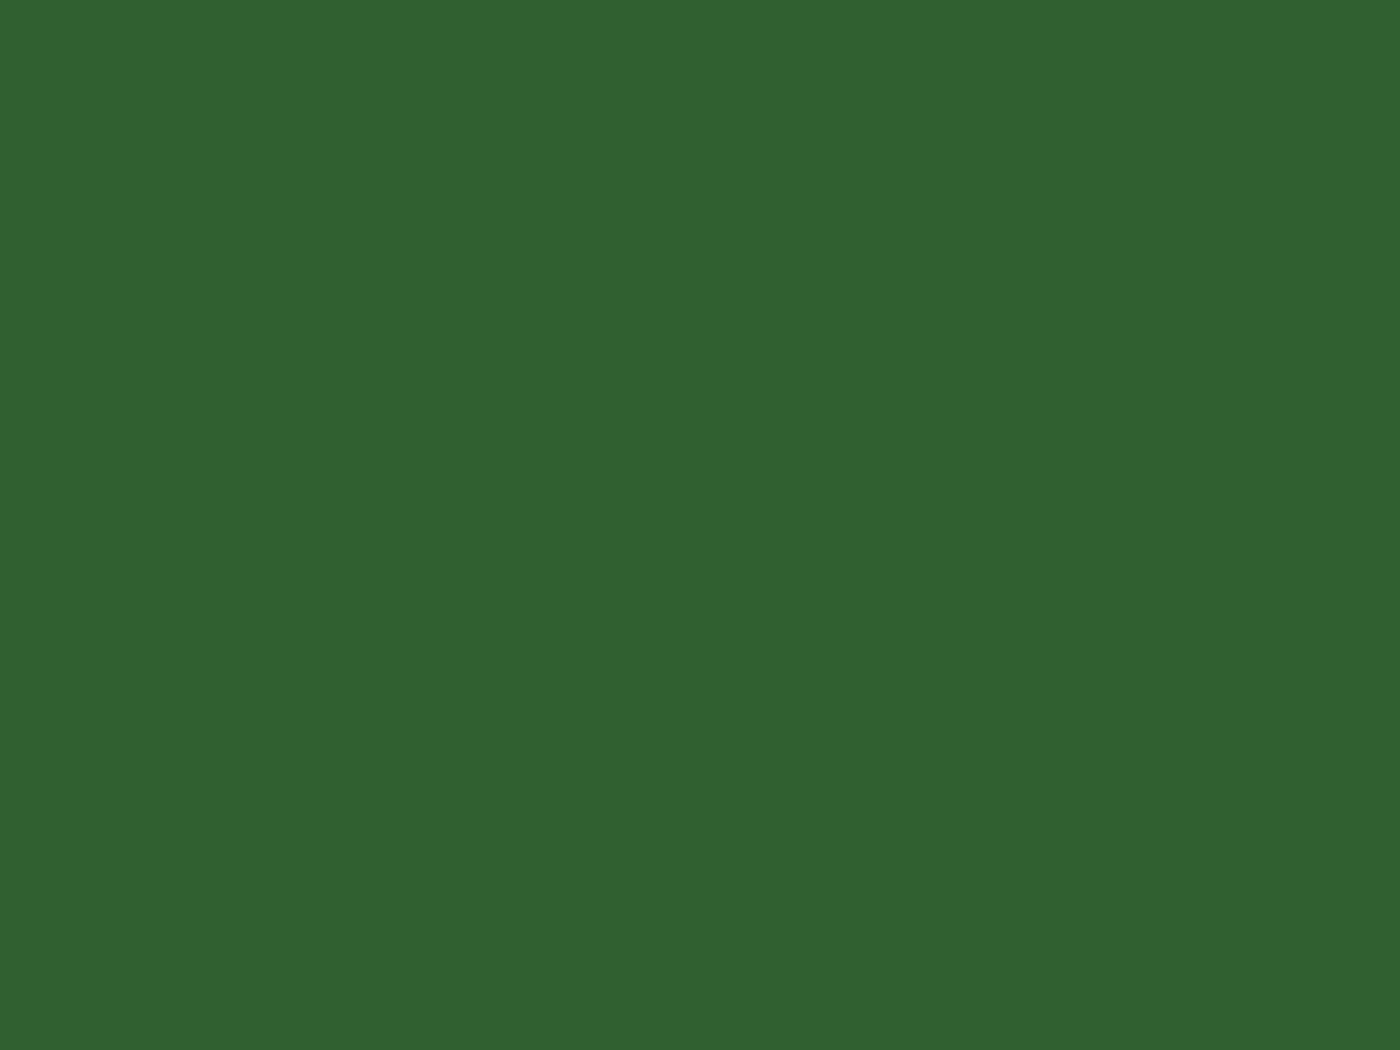 1400x1050 Mughal Green Solid Color Background